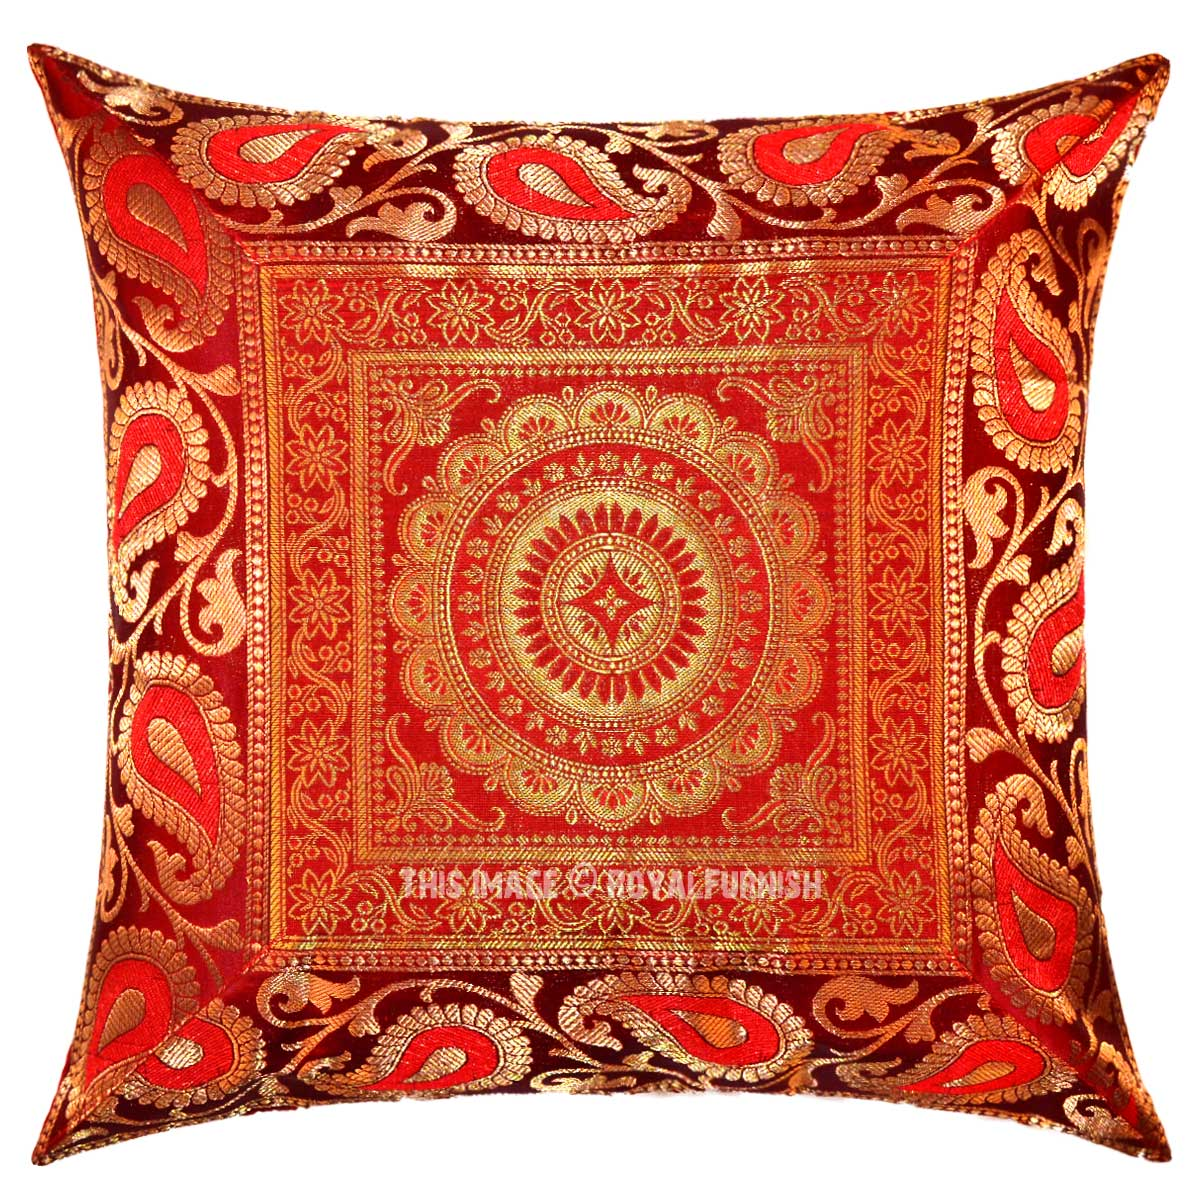 Red Silk Decorative Pillows : Red Flower Medallion Circle Decorative Unique Handcrafted Silk Pillow Cover 16X16 - RoyalFurnish.com